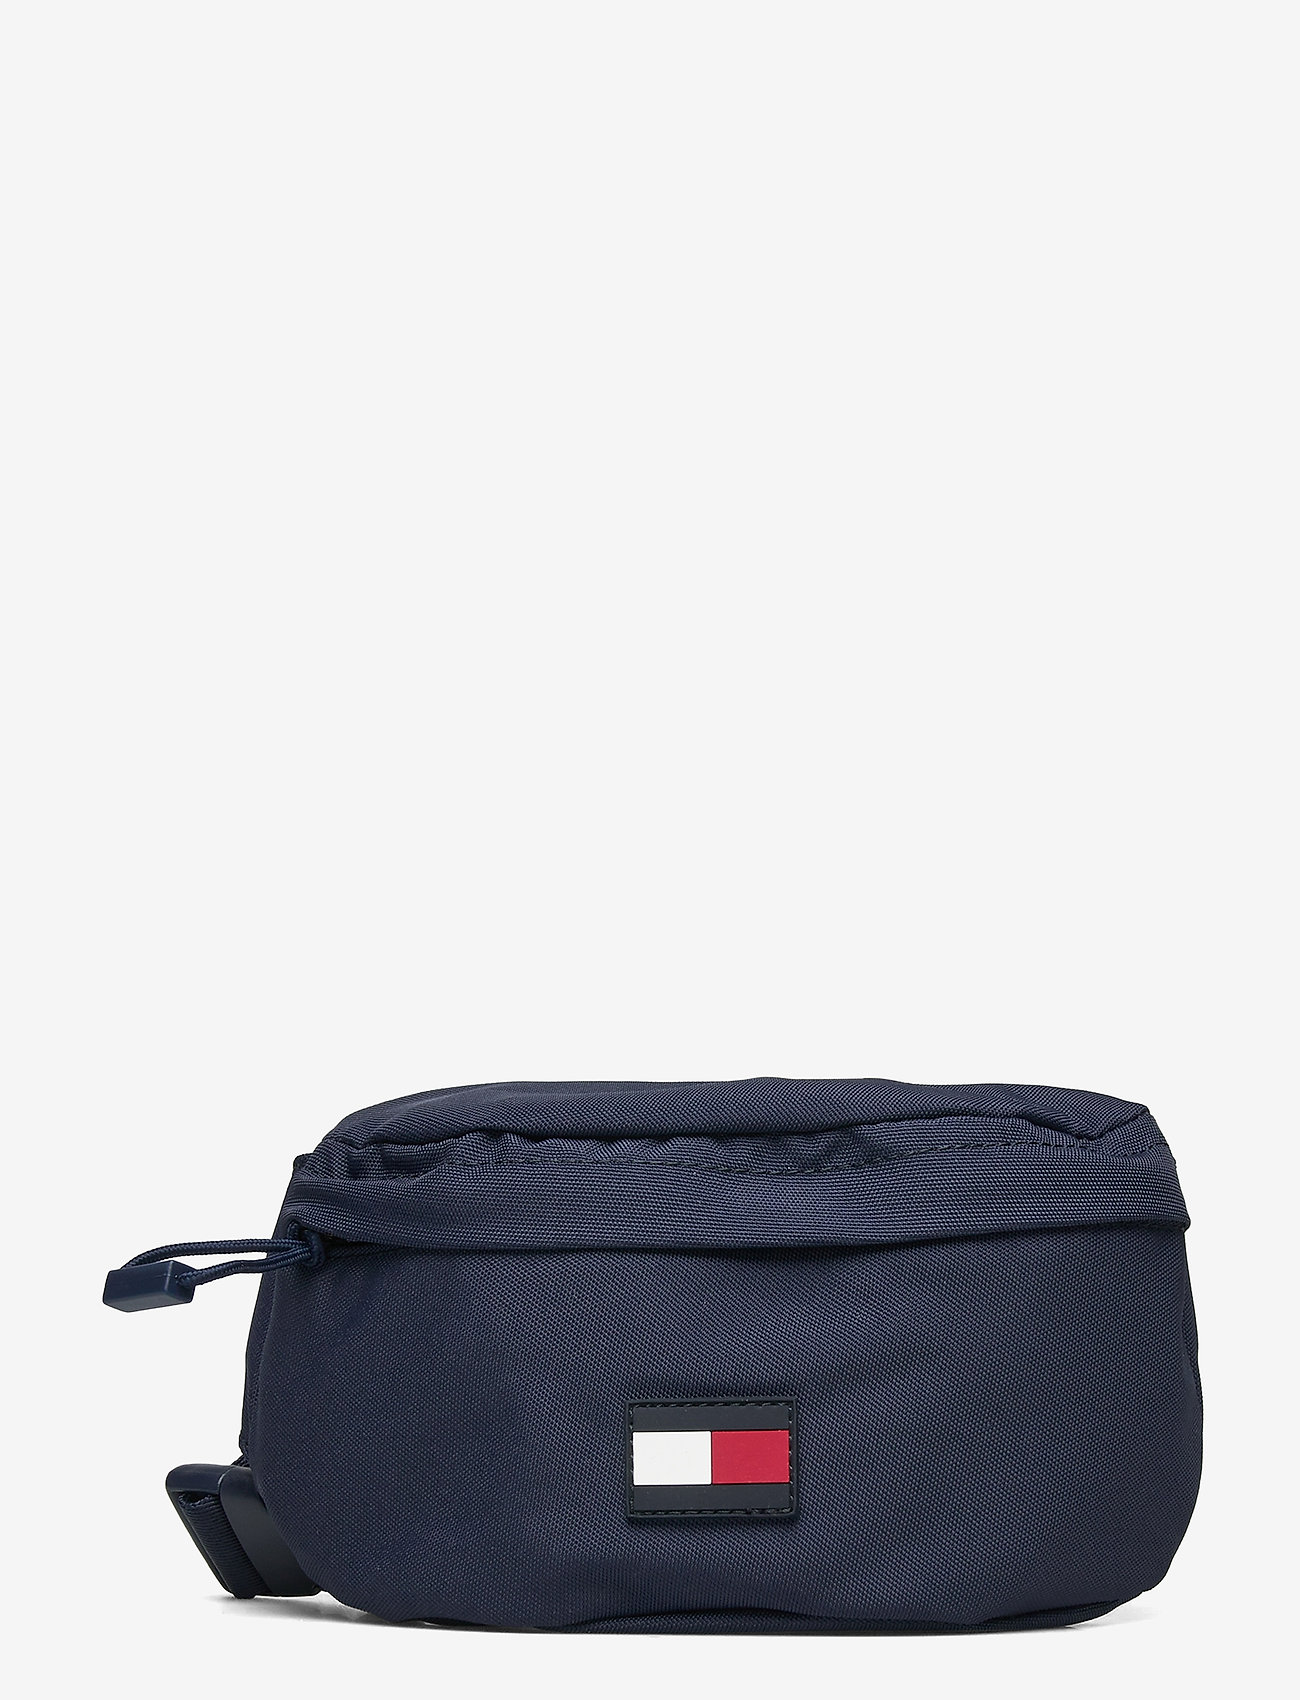 Tommy Hilfiger - BTS KIDS CORE BUMBAG - totes & small bags - twilight navy - 1